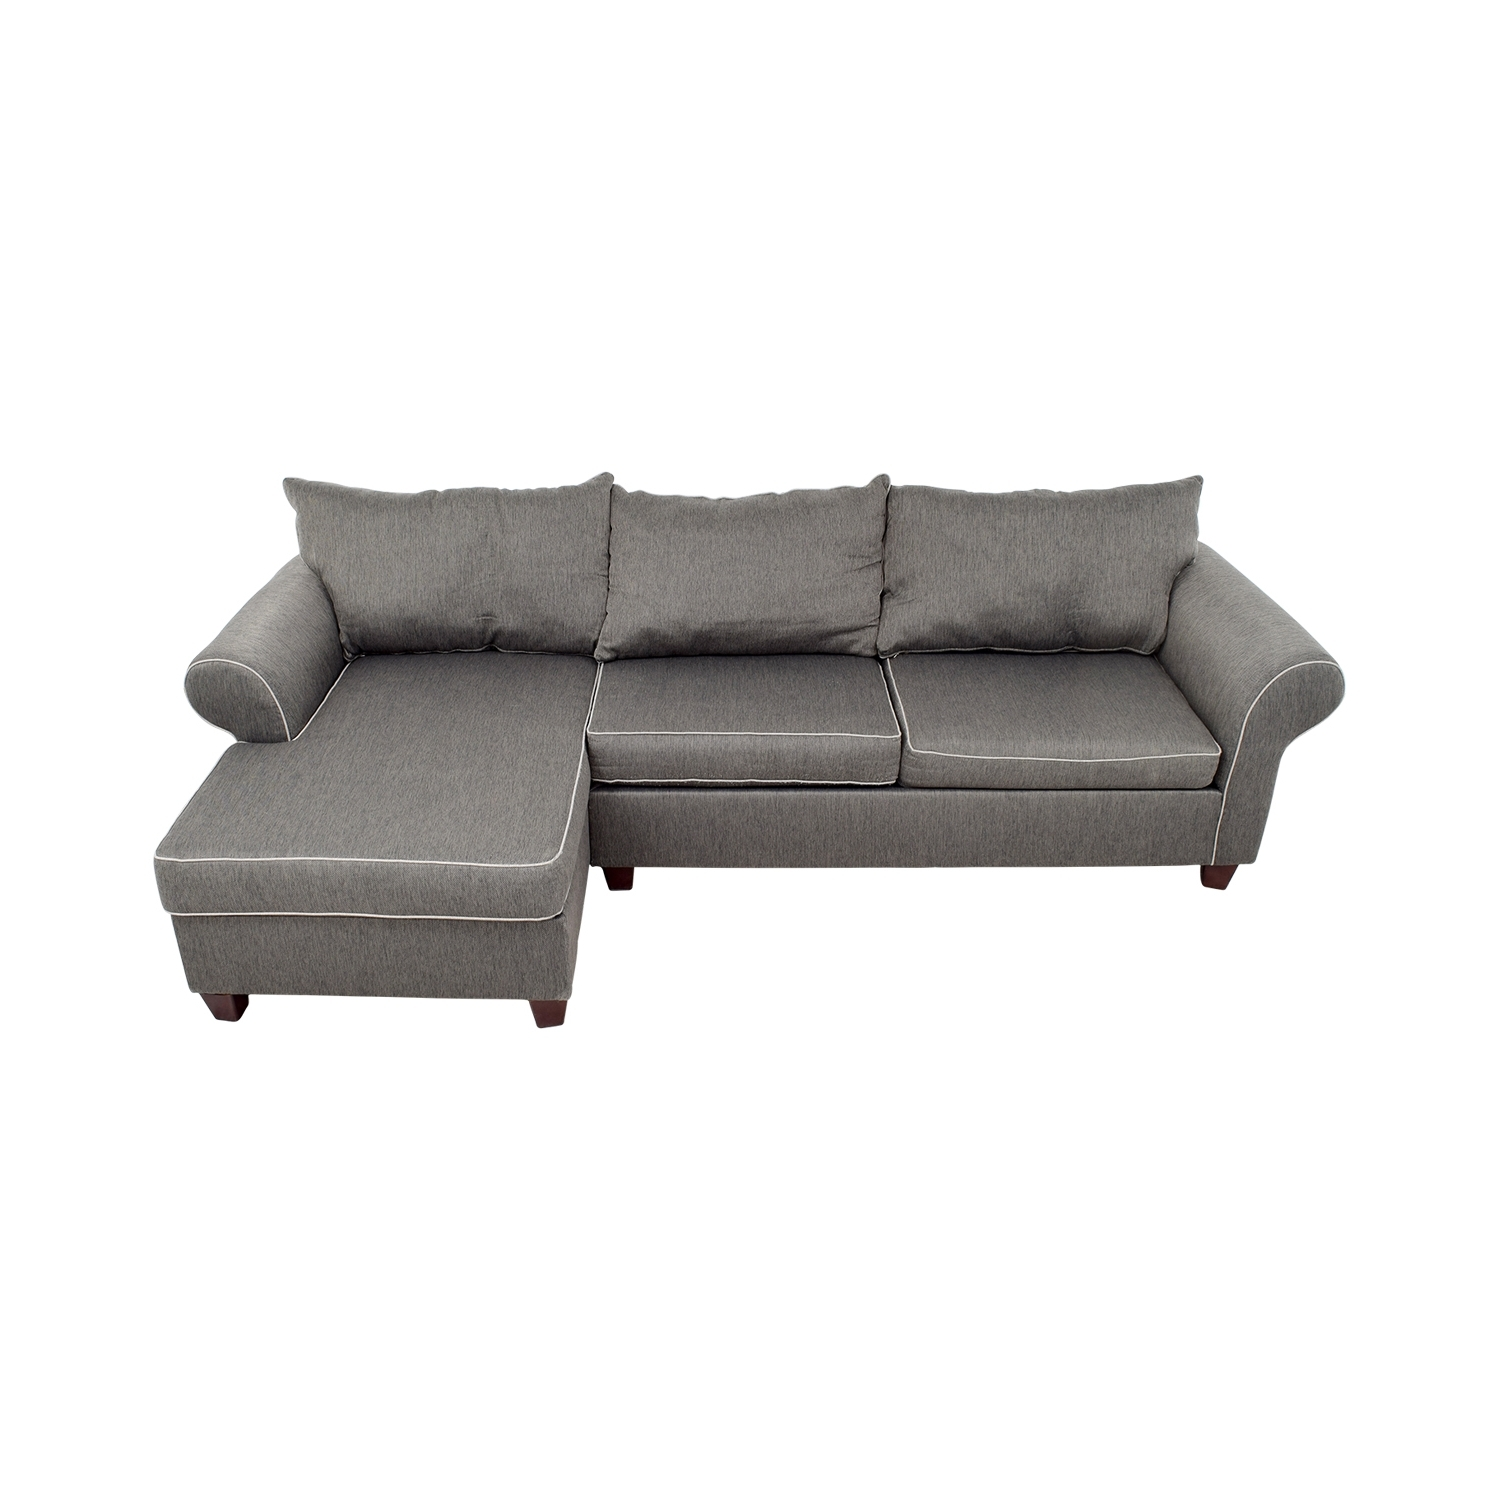 [%58% Off – Bob's Furniture Bob's Furniture Grey Chaise Sectional With Regard To Recent Bobs Furniture Chaises|Bobs Furniture Chaises In Latest 58% Off – Bob's Furniture Bob's Furniture Grey Chaise Sectional|Most Recently Released Bobs Furniture Chaises With 58% Off – Bob's Furniture Bob's Furniture Grey Chaise Sectional|Well Liked 58% Off – Bob's Furniture Bob's Furniture Grey Chaise Sectional With Regard To Bobs Furniture Chaises%] (View 3 of 15)